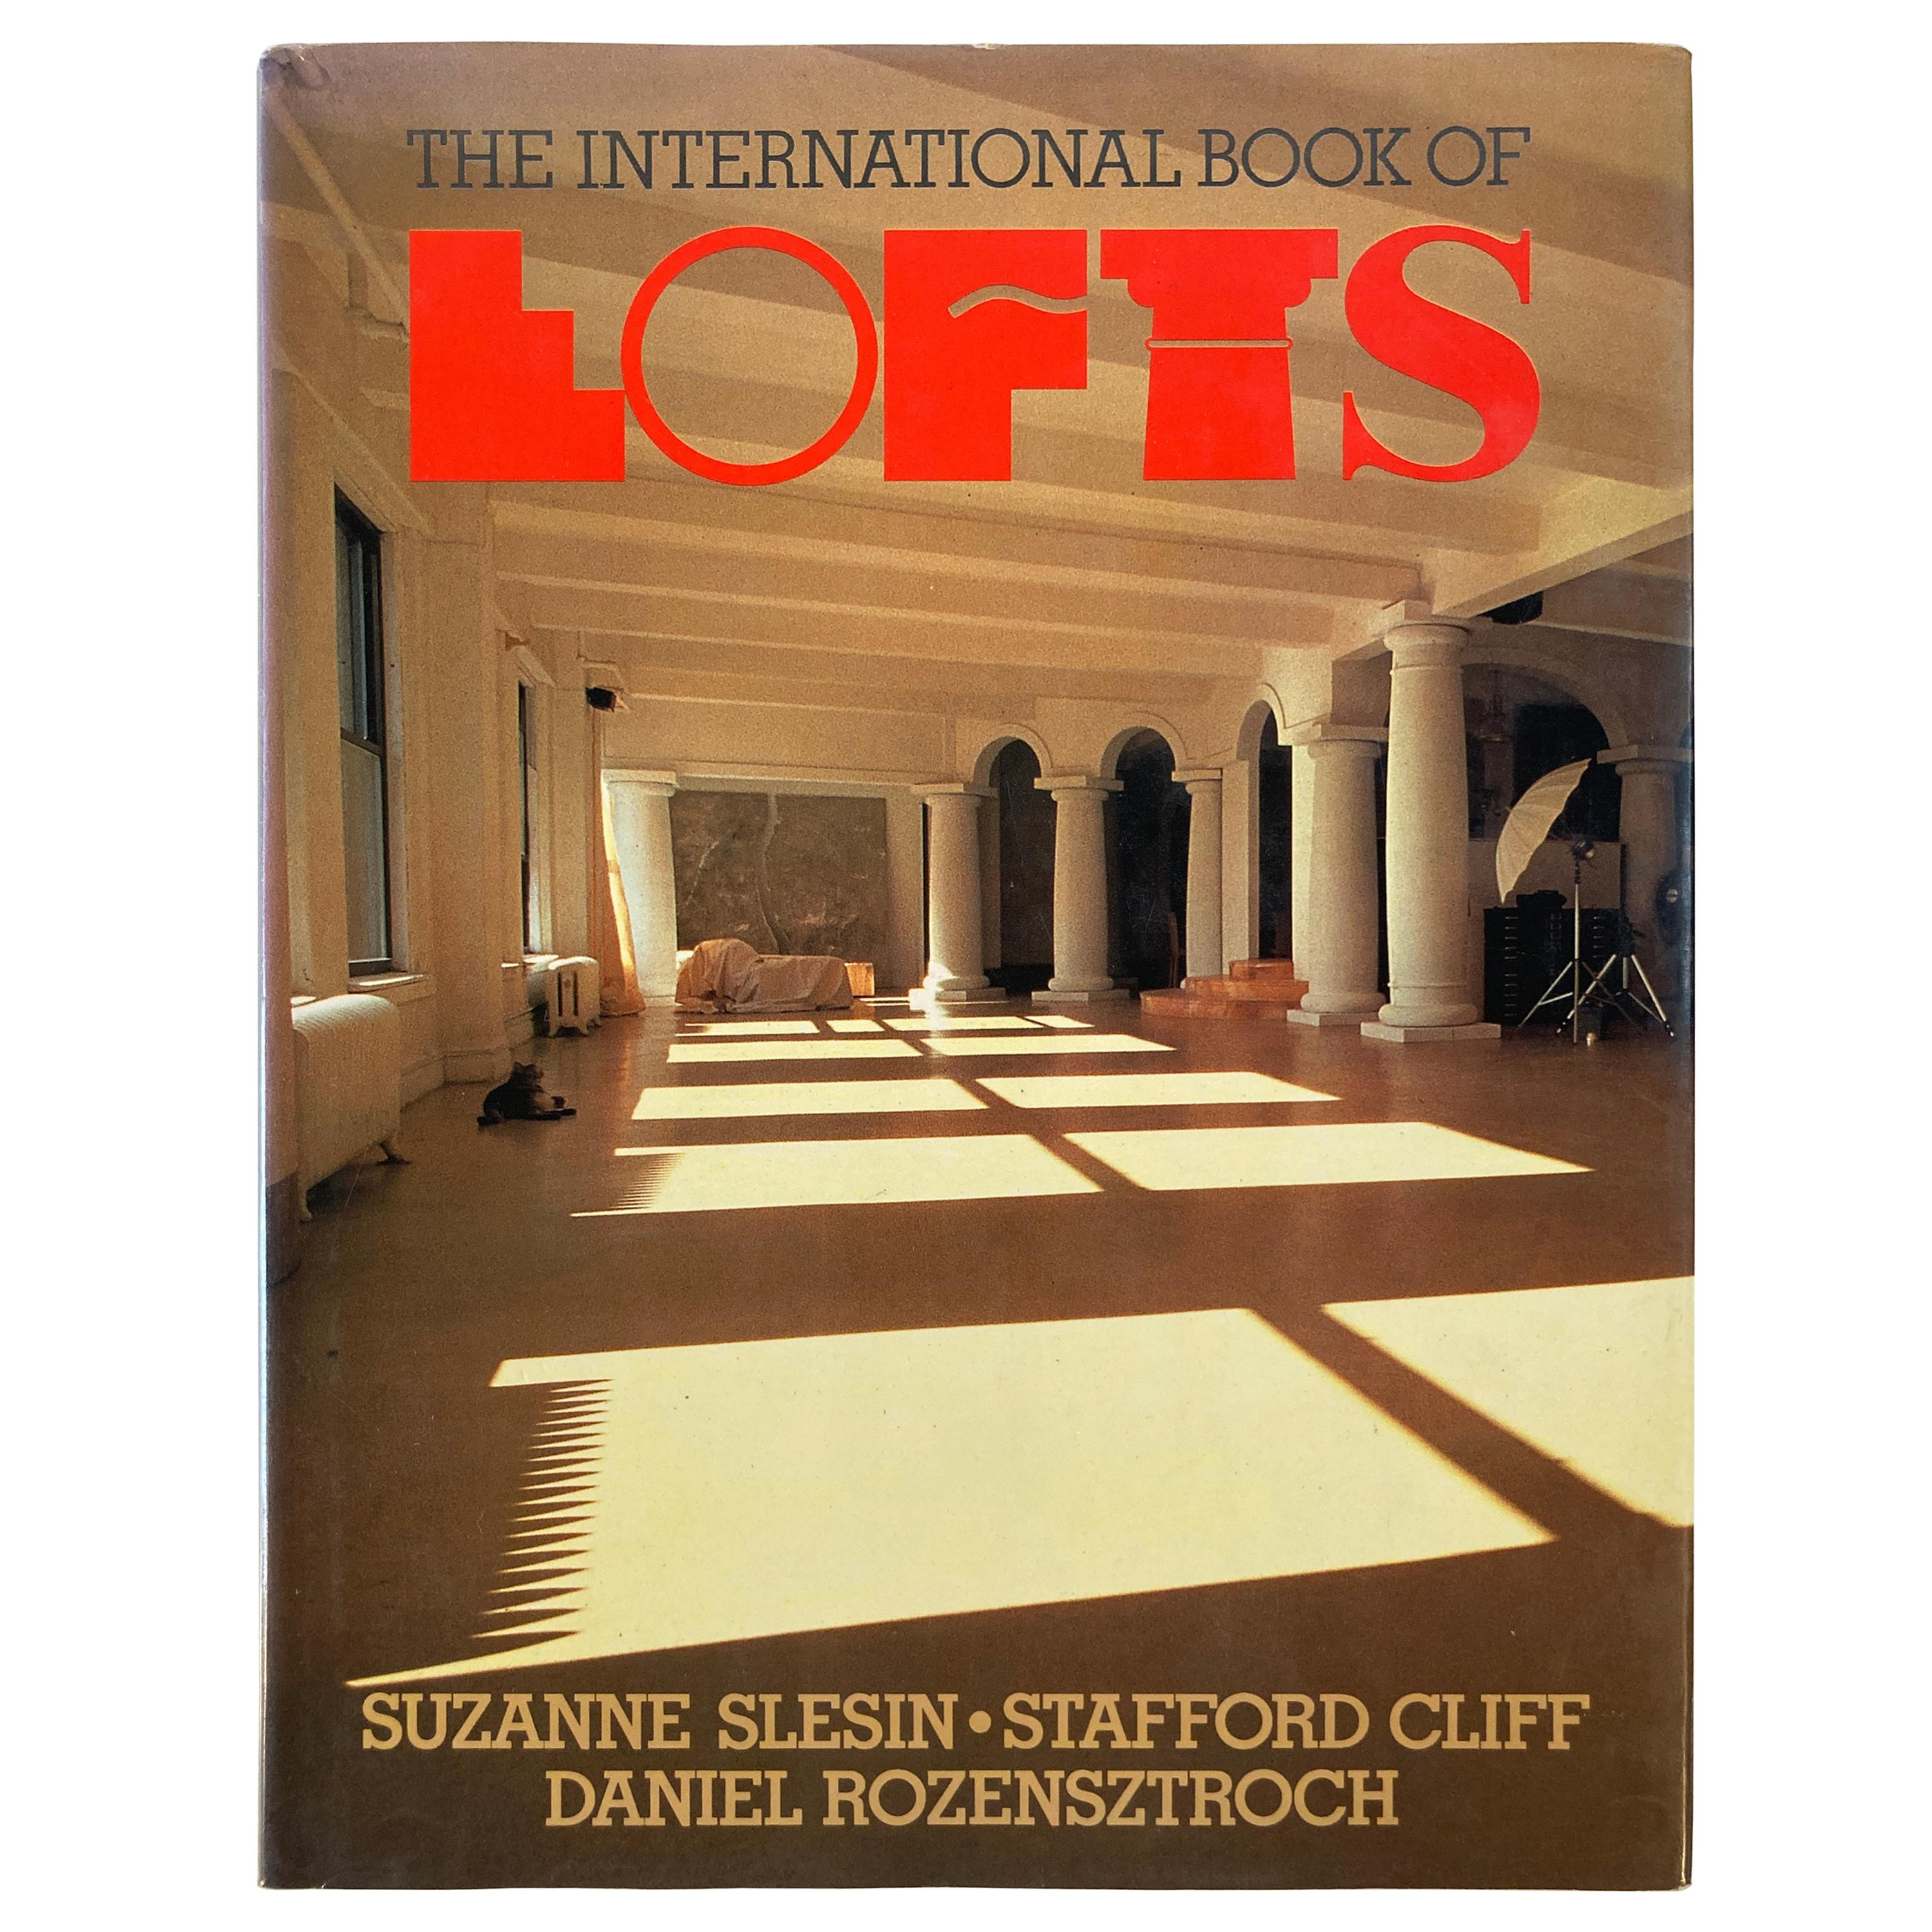 The International Book of Lofts Book by Suzanne Slesin Coffee Table Book